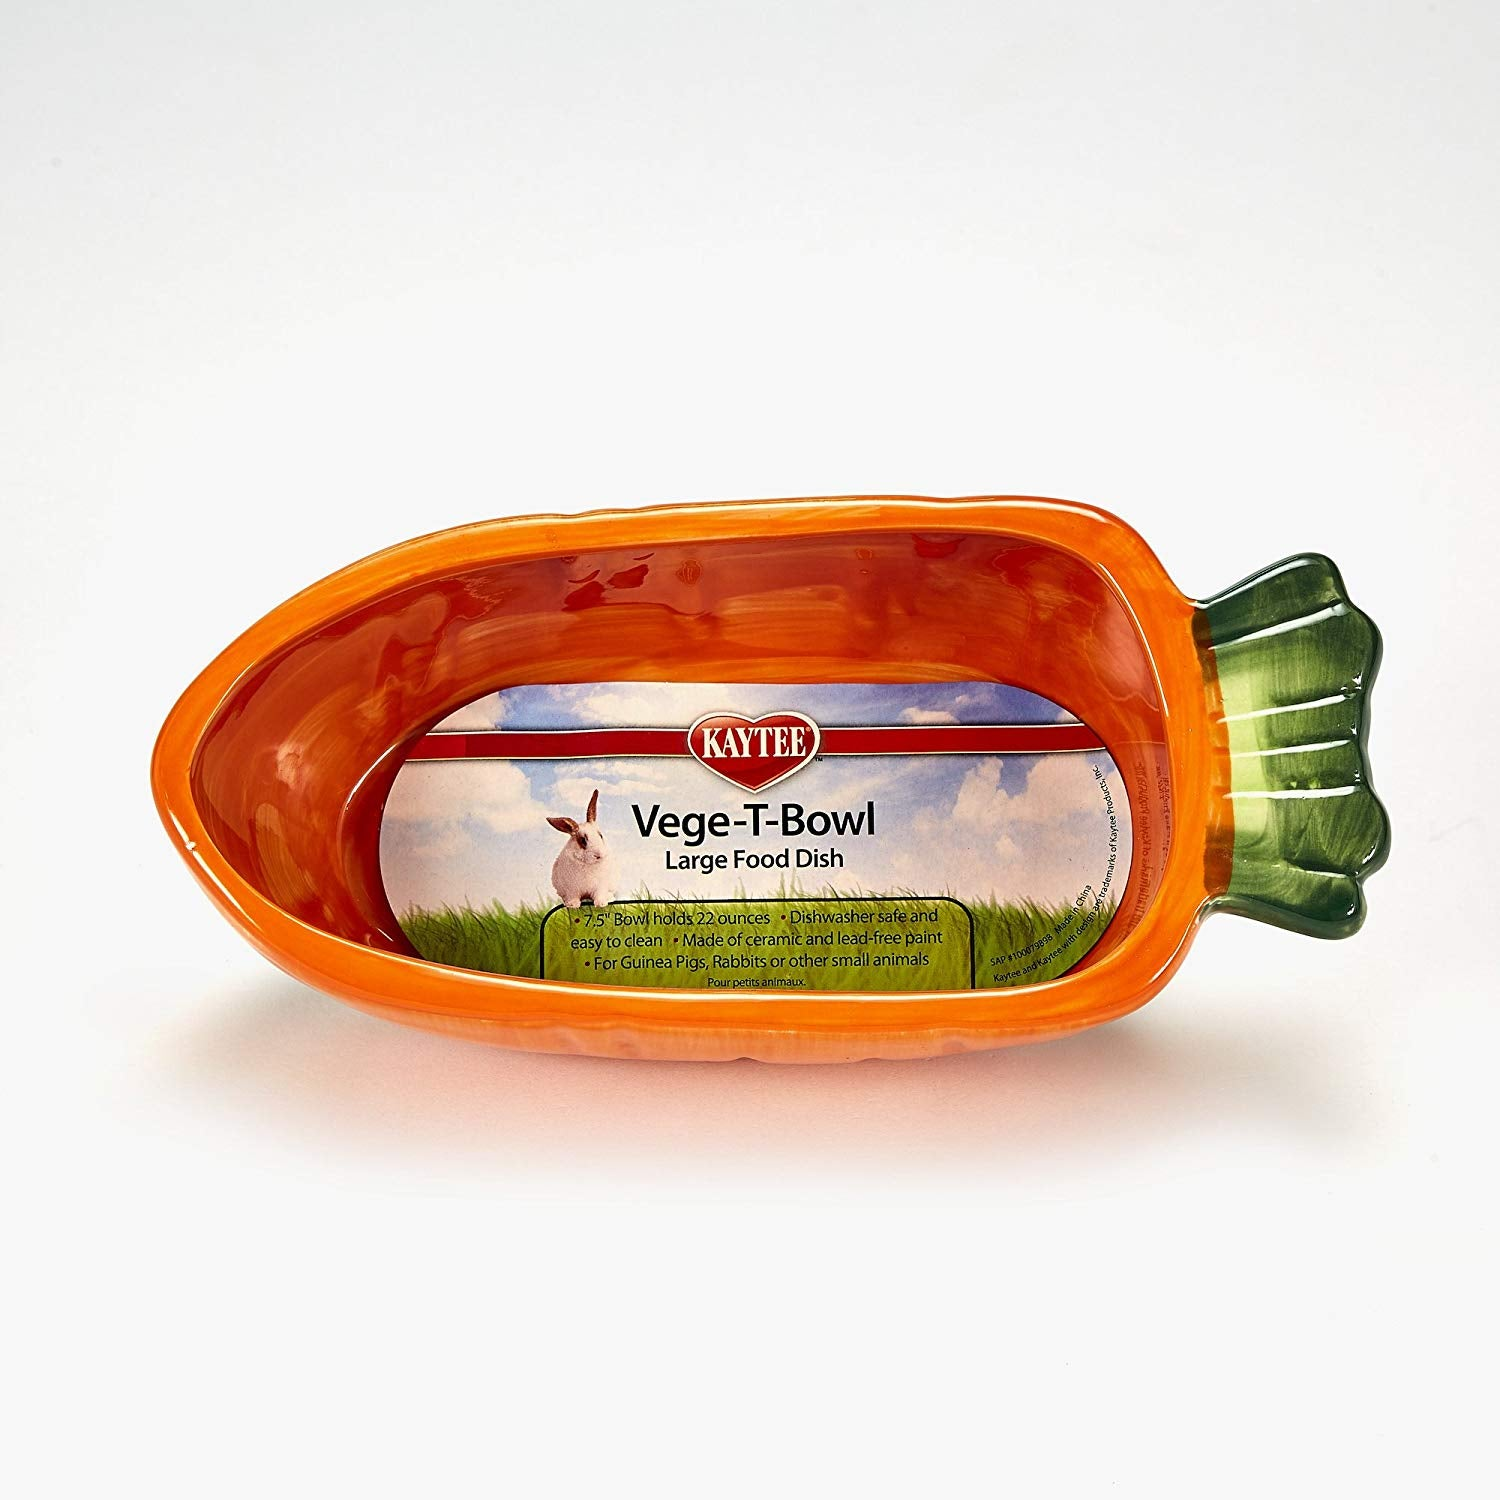 Kaytee Vege-T-Bowl Large Food Dish